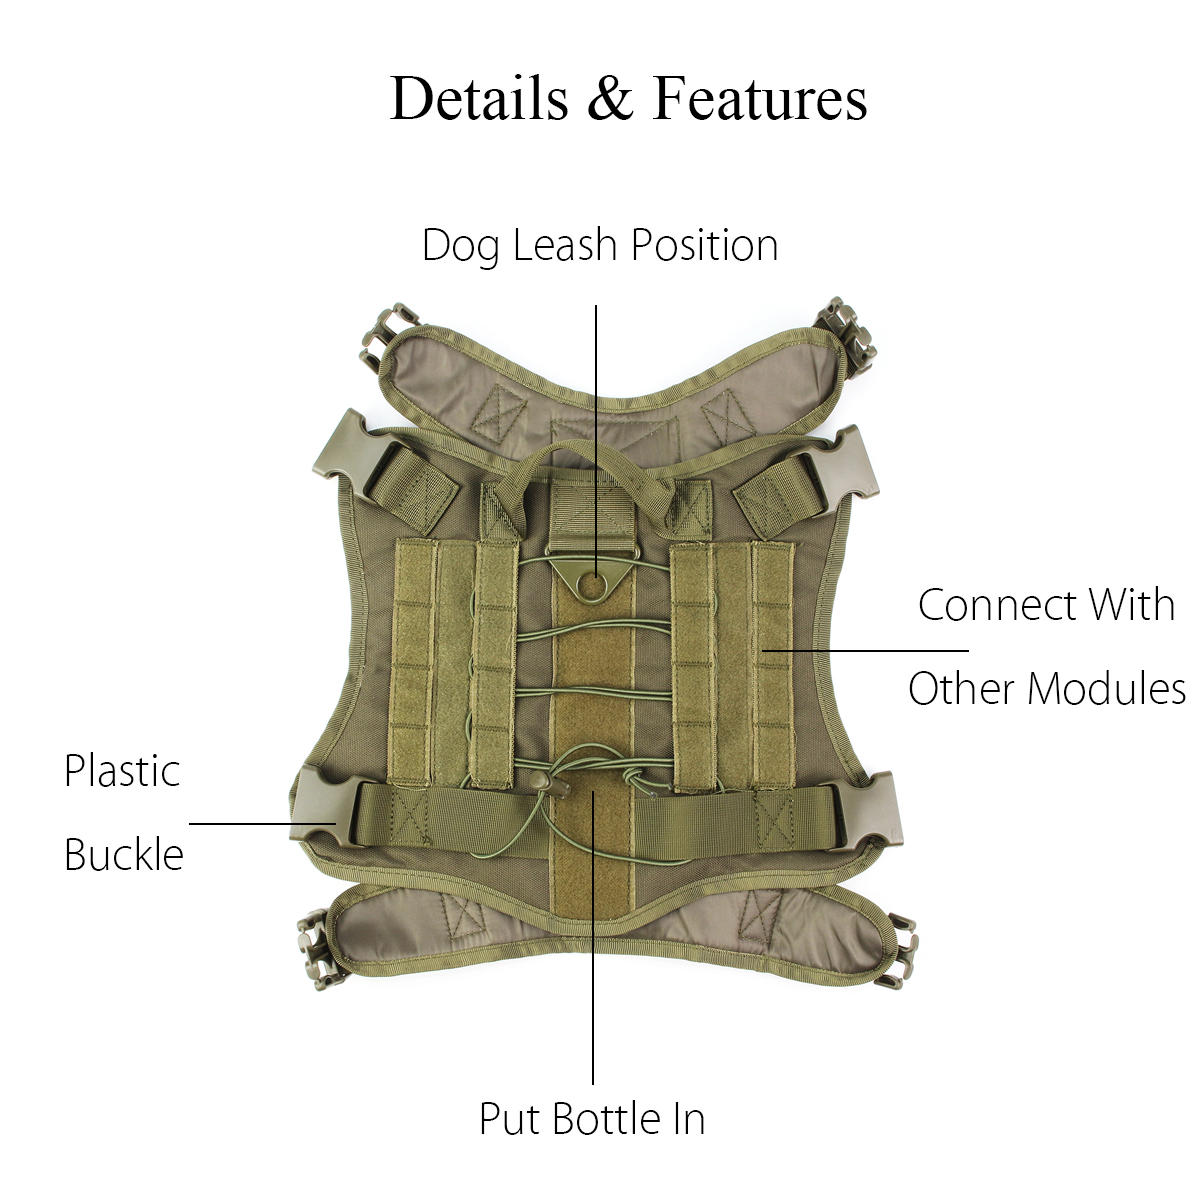 L Size 1000D Pet Trainer Nylon Outdoor Military Tactical Dog Training Molle Compact Vest Harness MOLLE System Clothes - 6